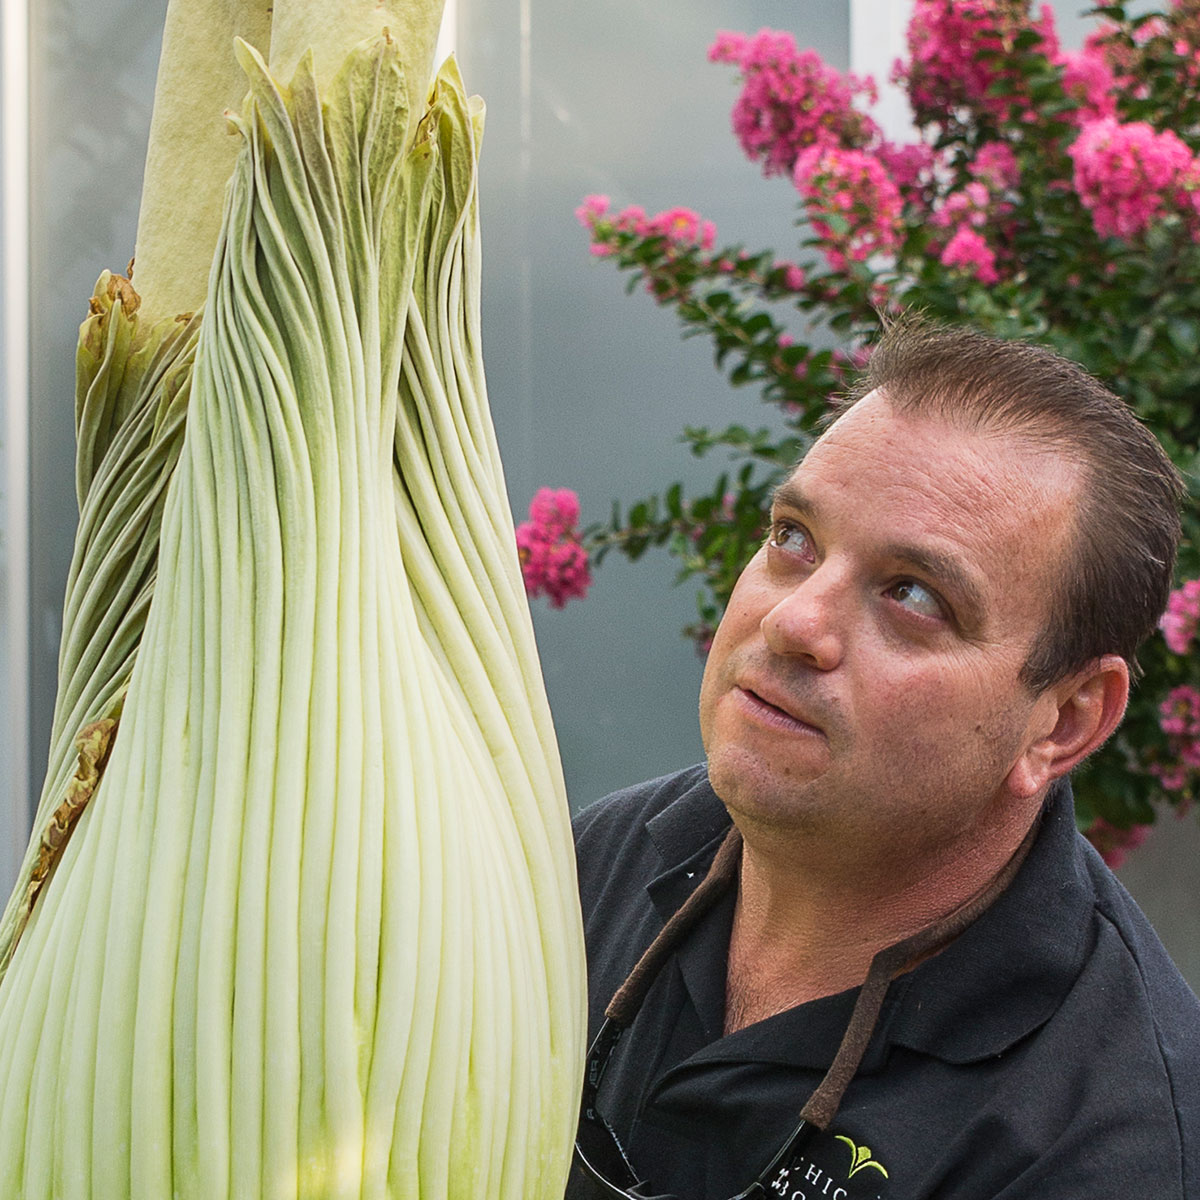 Care and Feeding for a Giant Bloom